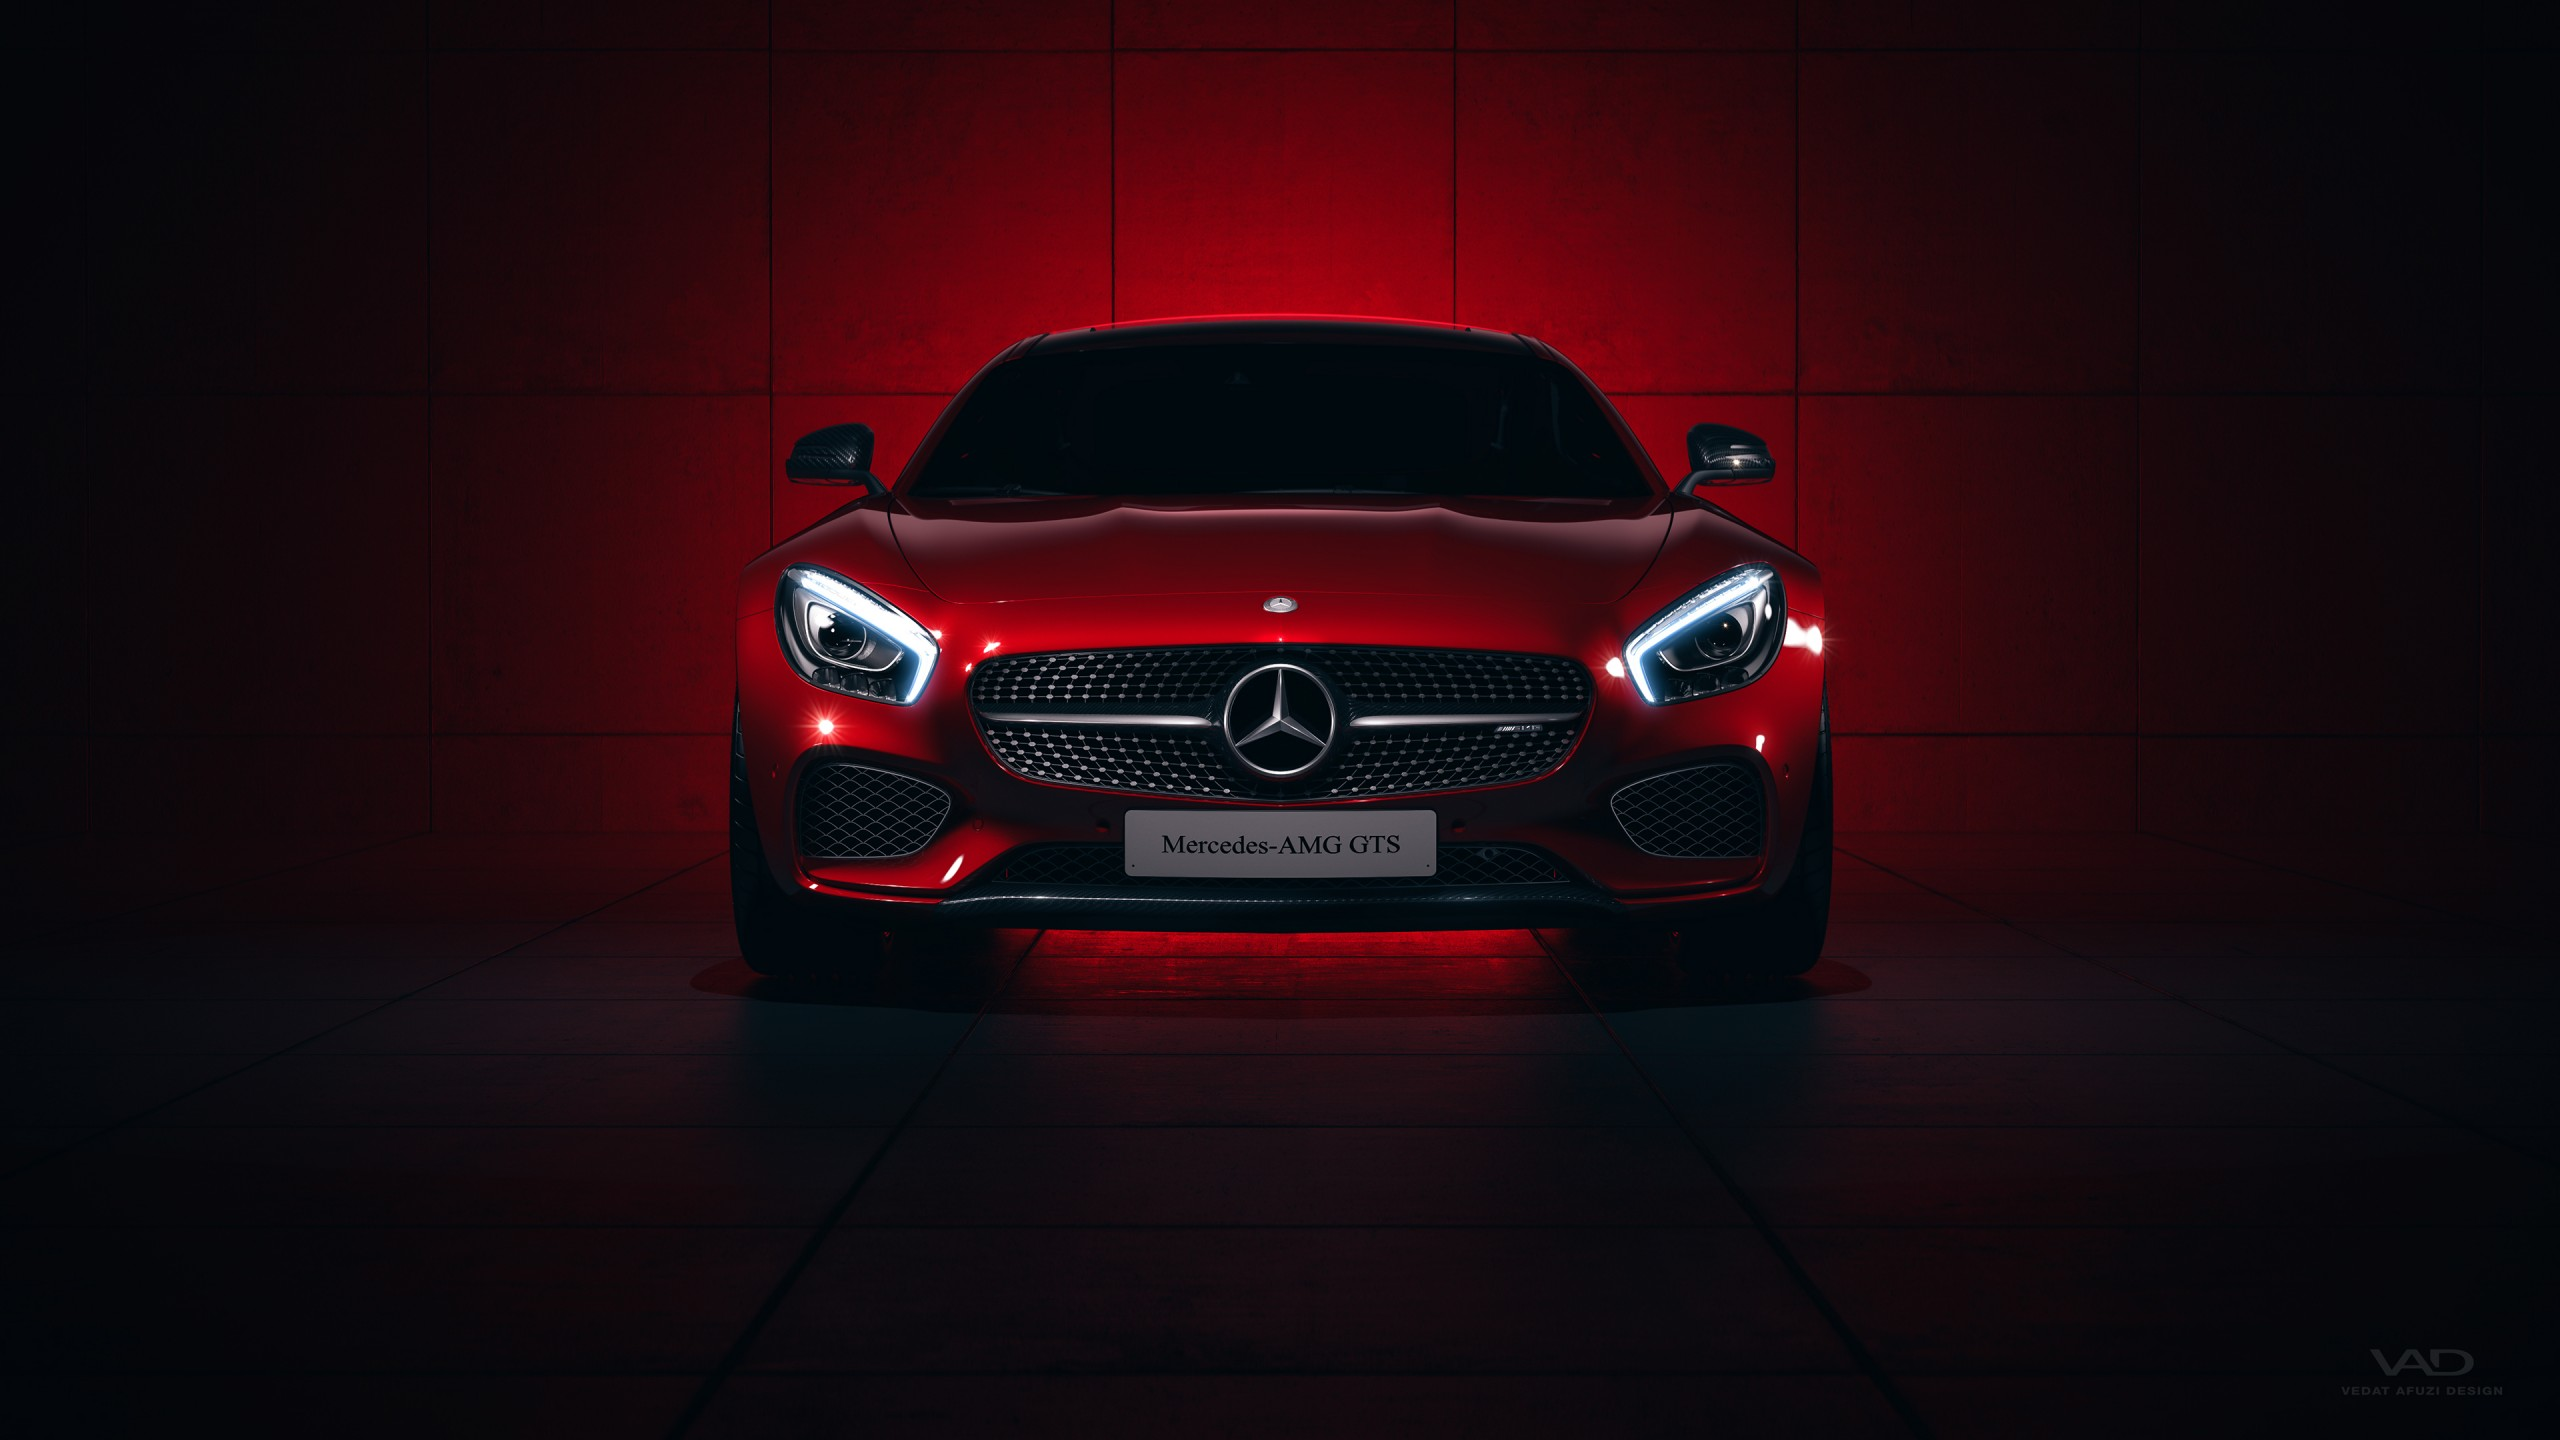 acura vs lamborghini html with Mercedes Amg Gts Cgi 4k Wallpapers on 2014 bmw m4 coupe uk Wallpapers further Ferrari F12 Price furthermore Photo 00 together with 2004 2010 BMW 5 Series 4DR E60 Wagon E61 Duraflex 1M Look Front Bumper Cover 1 Piece furthermore Mitsubishi Pajero Sport Perfect Suv Car 2.